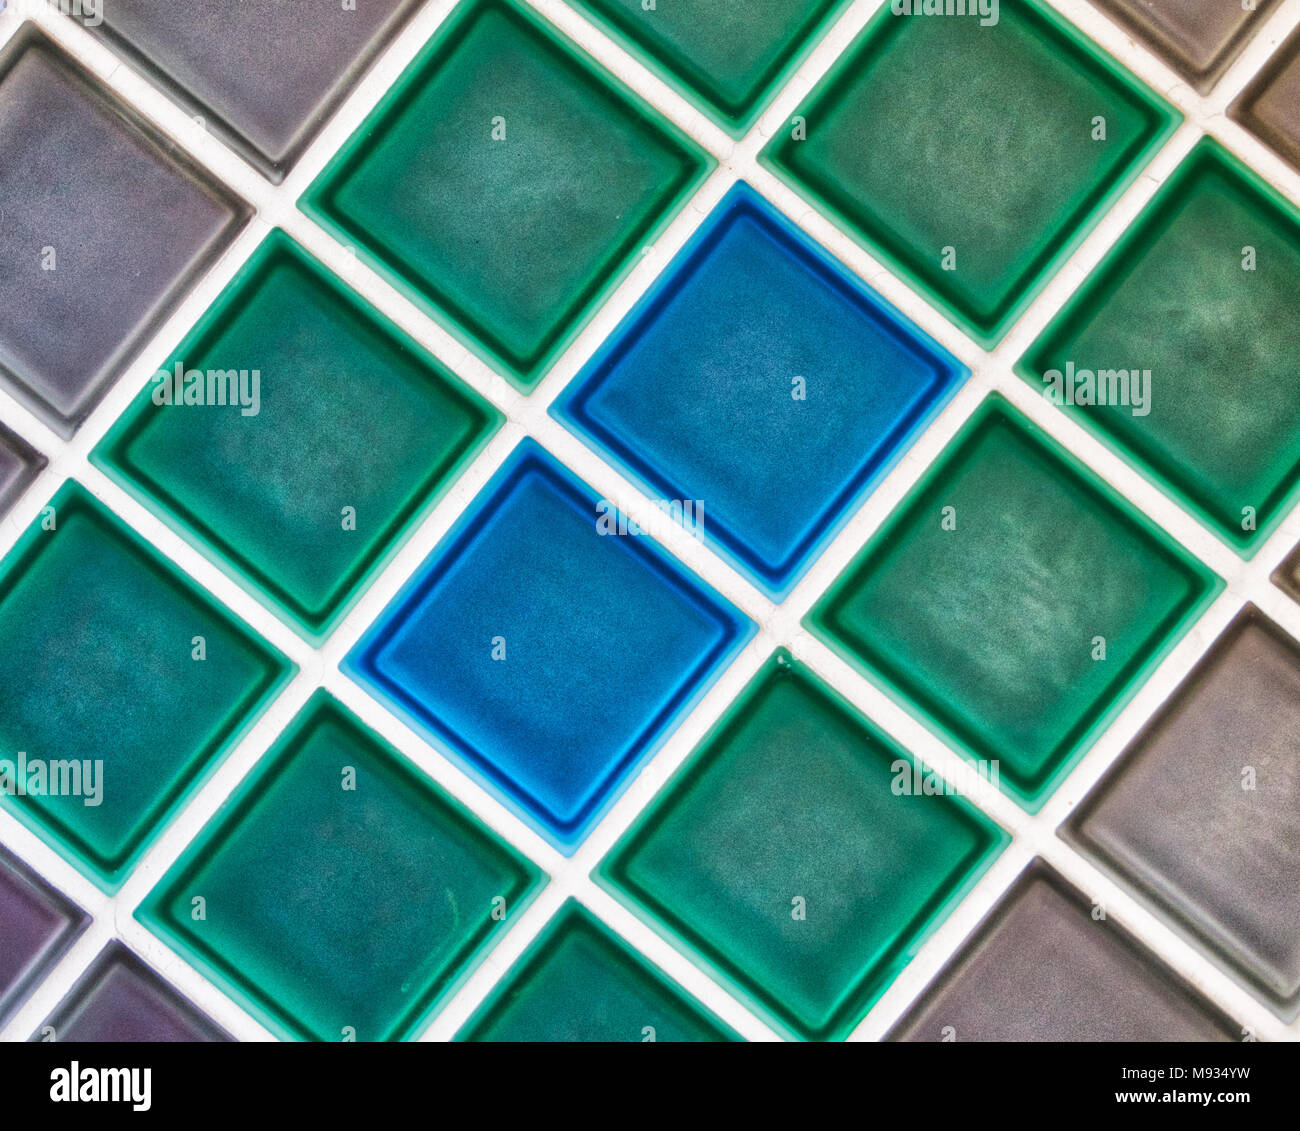 Madrid, Spain - March 21 2018: Colorful Ceramic Mosaic Tiles (Grey ...